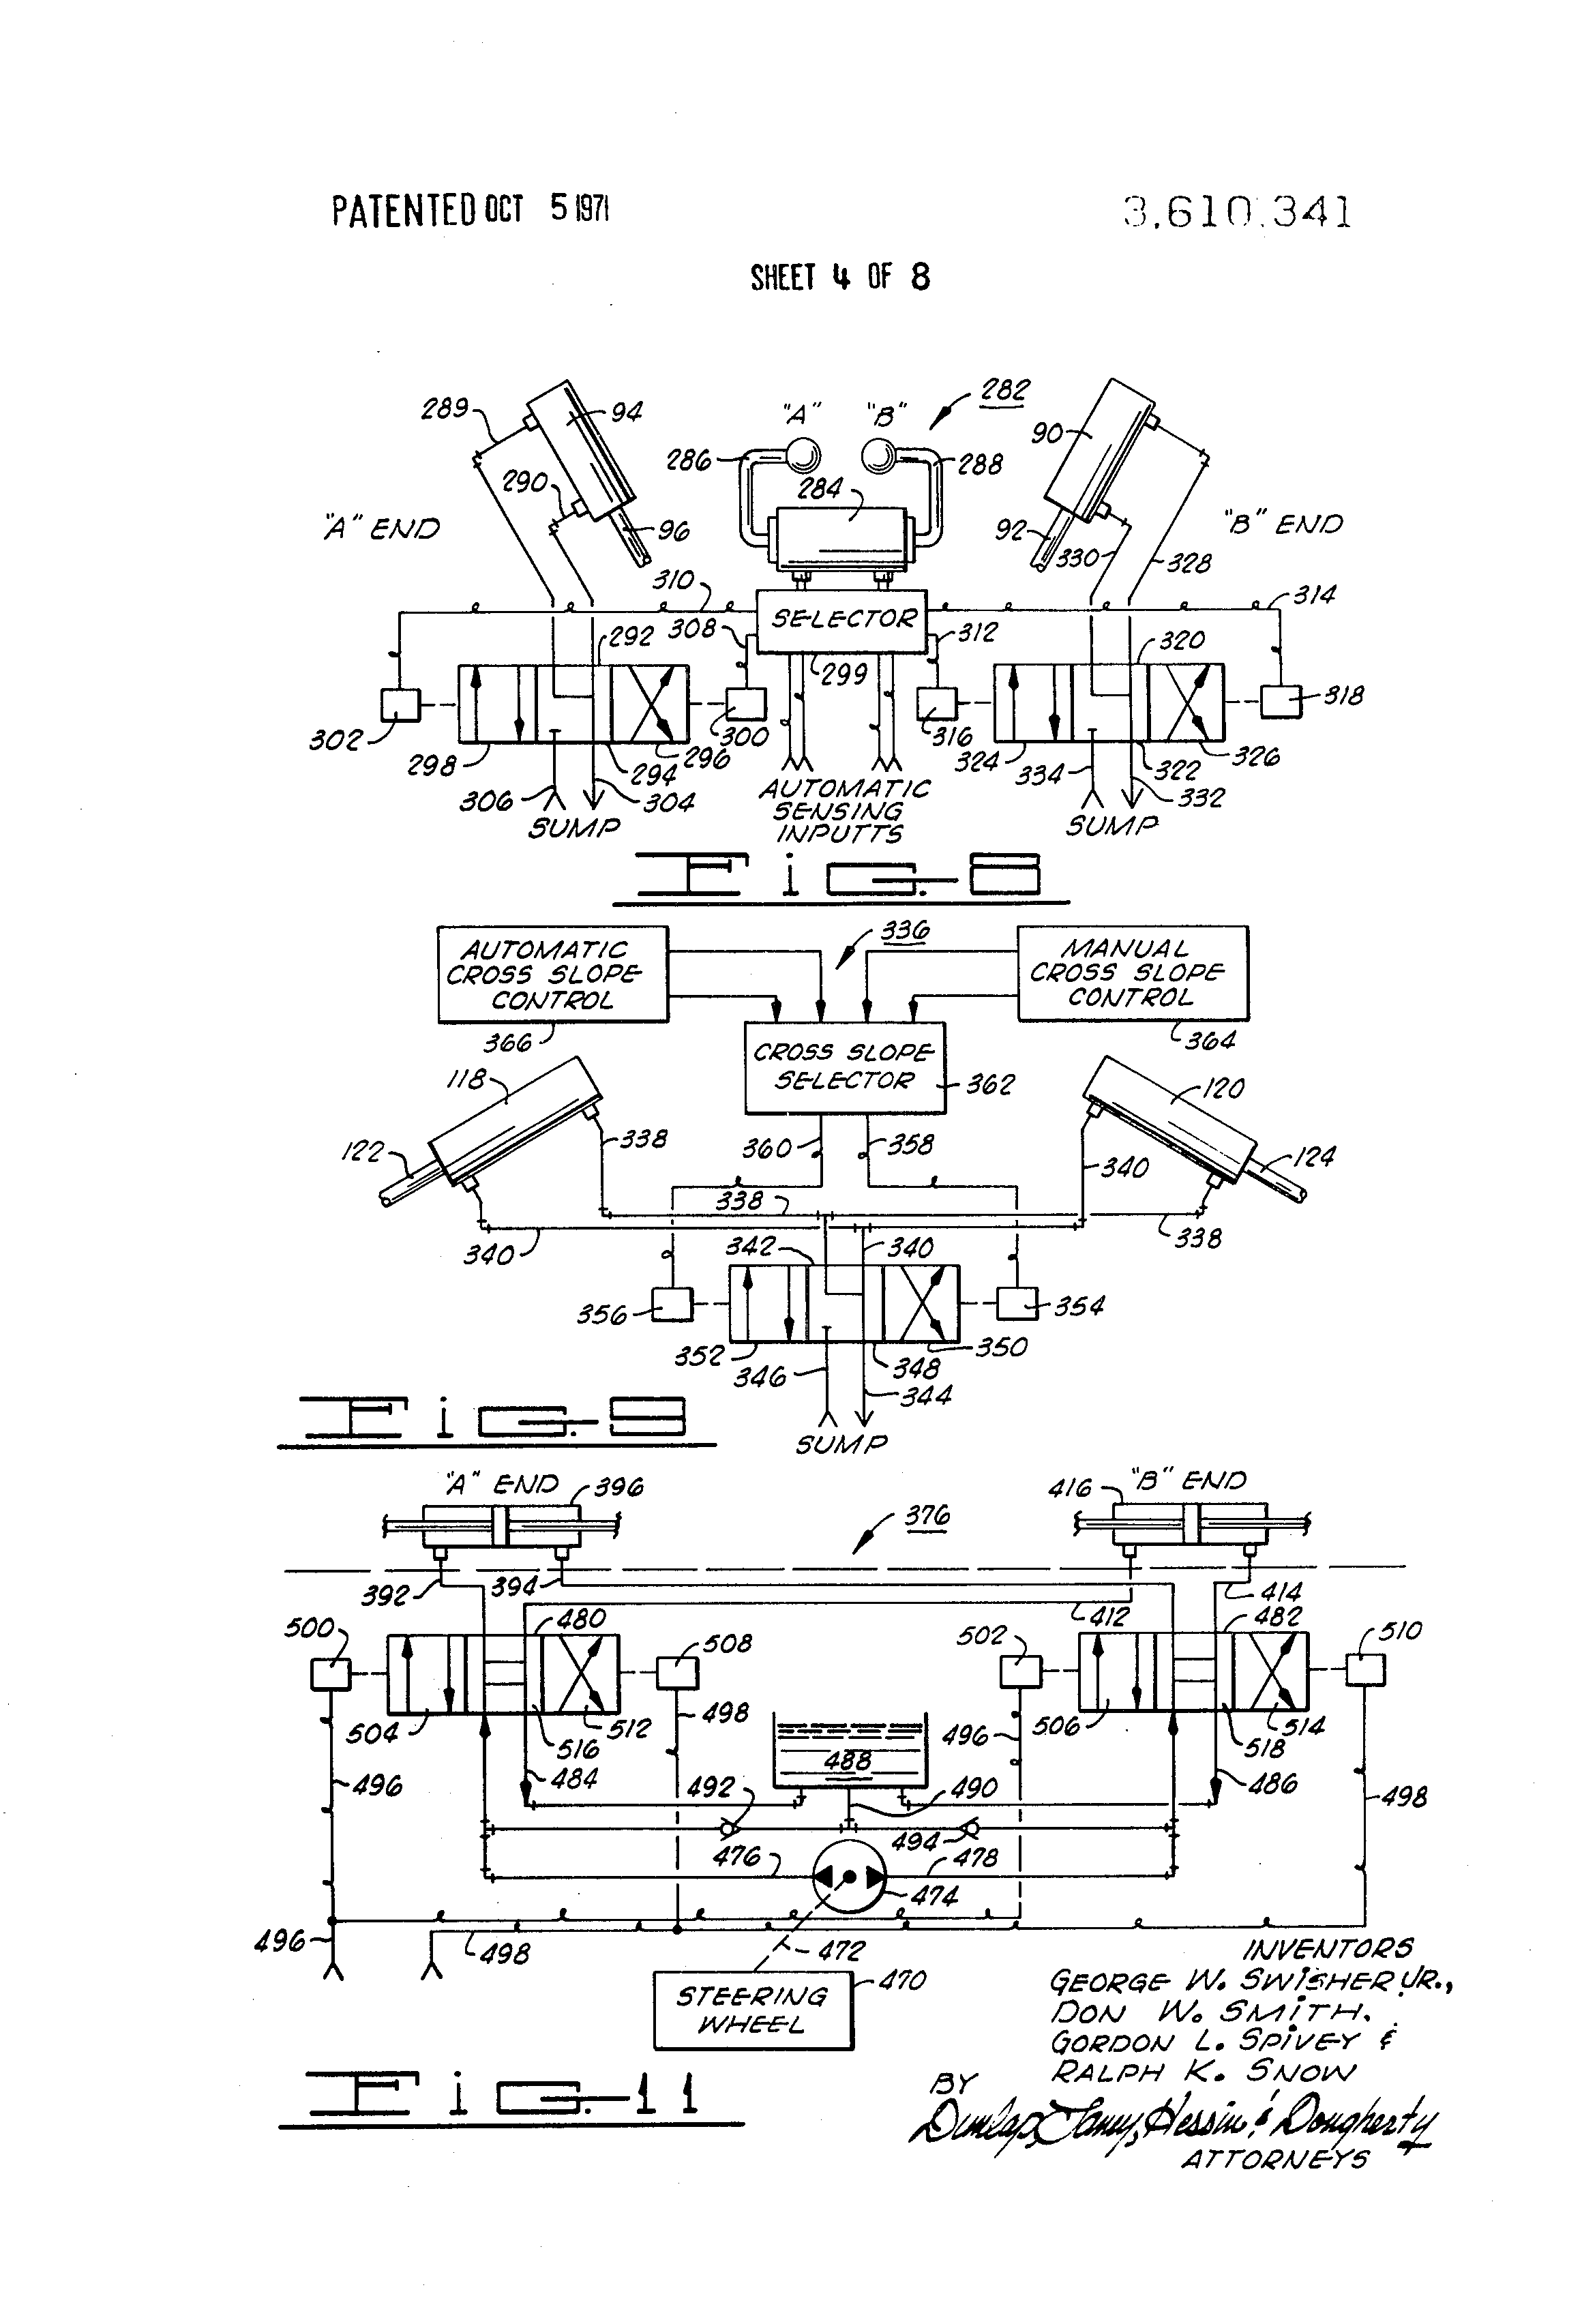 784 international tractor wiring diagram 6 volt system Farmall 706 Wiring- Diagram Delco Tractor Alternator Wiring Diagram